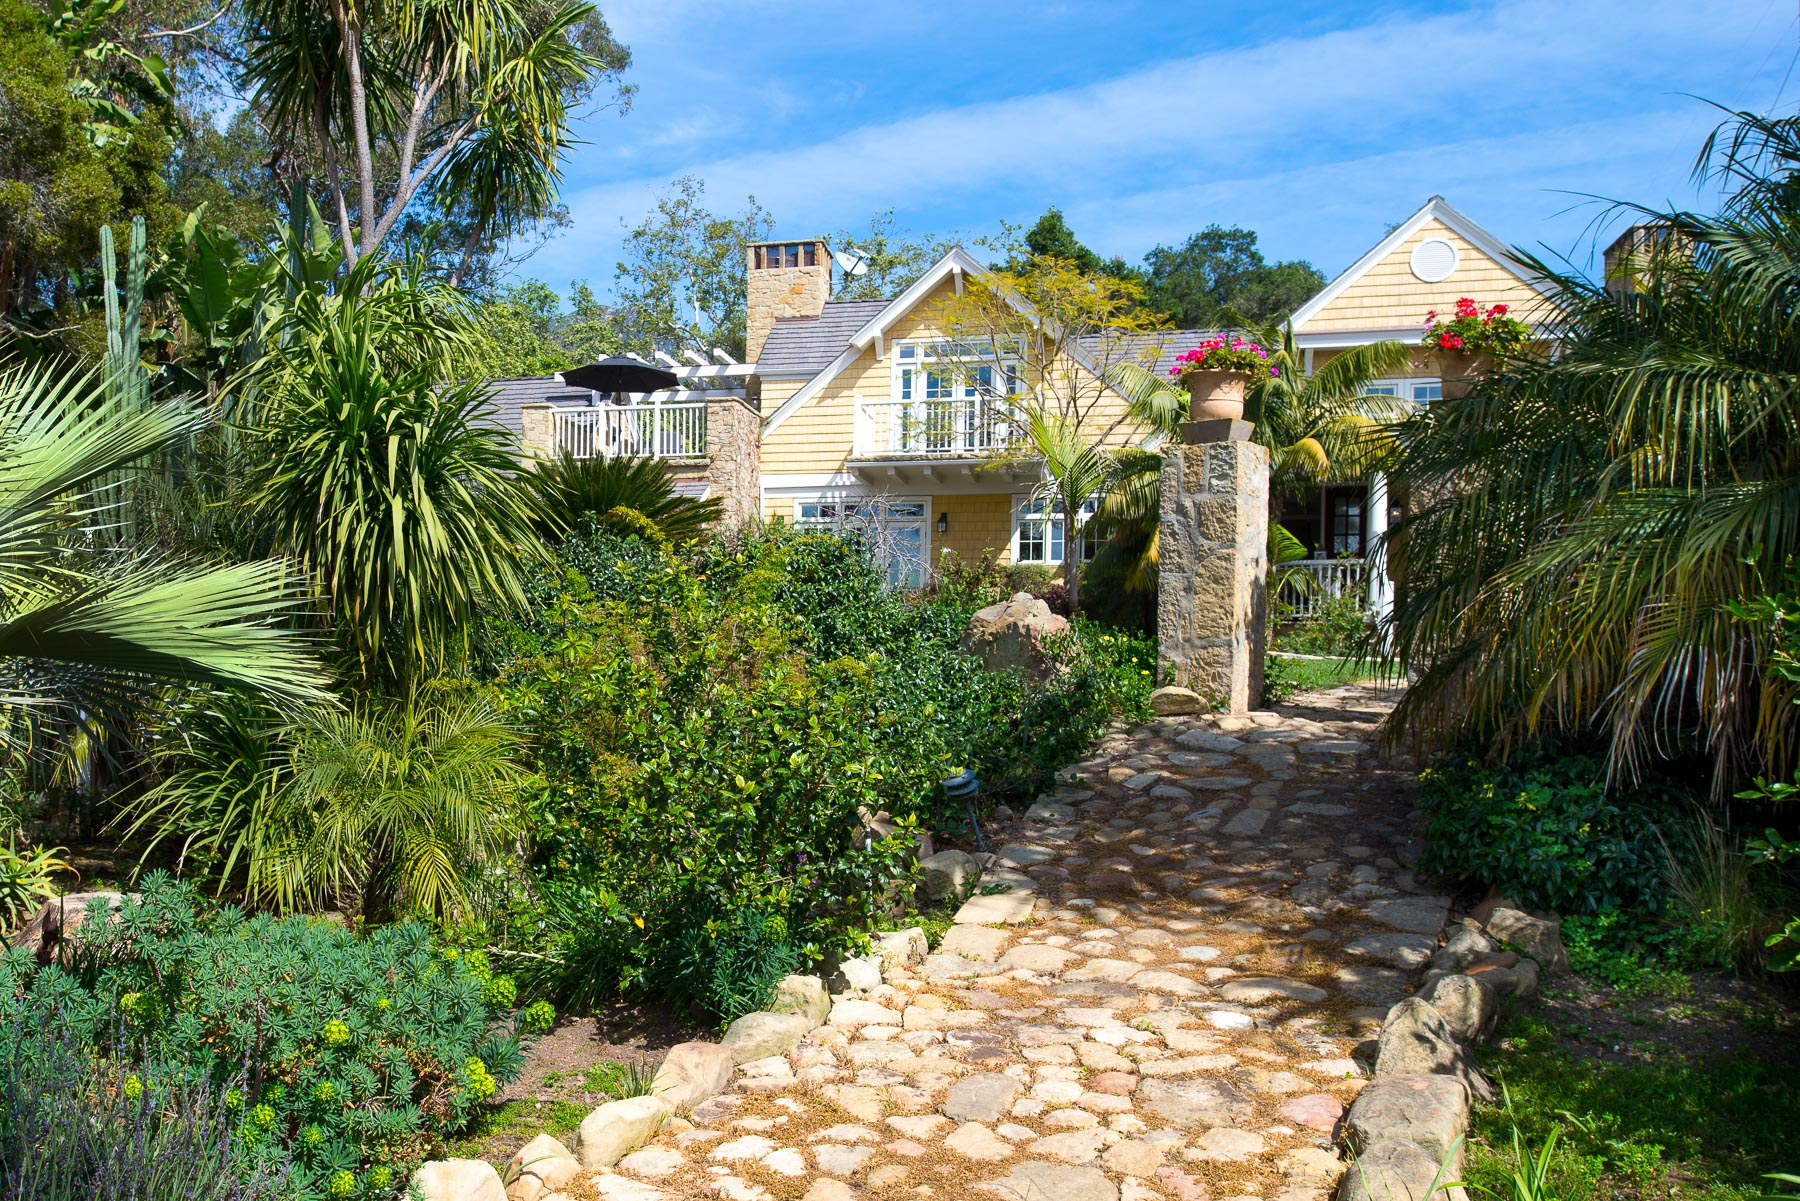 SOLD! 495 Toro Canyon Road, Montecito | $3,725,000